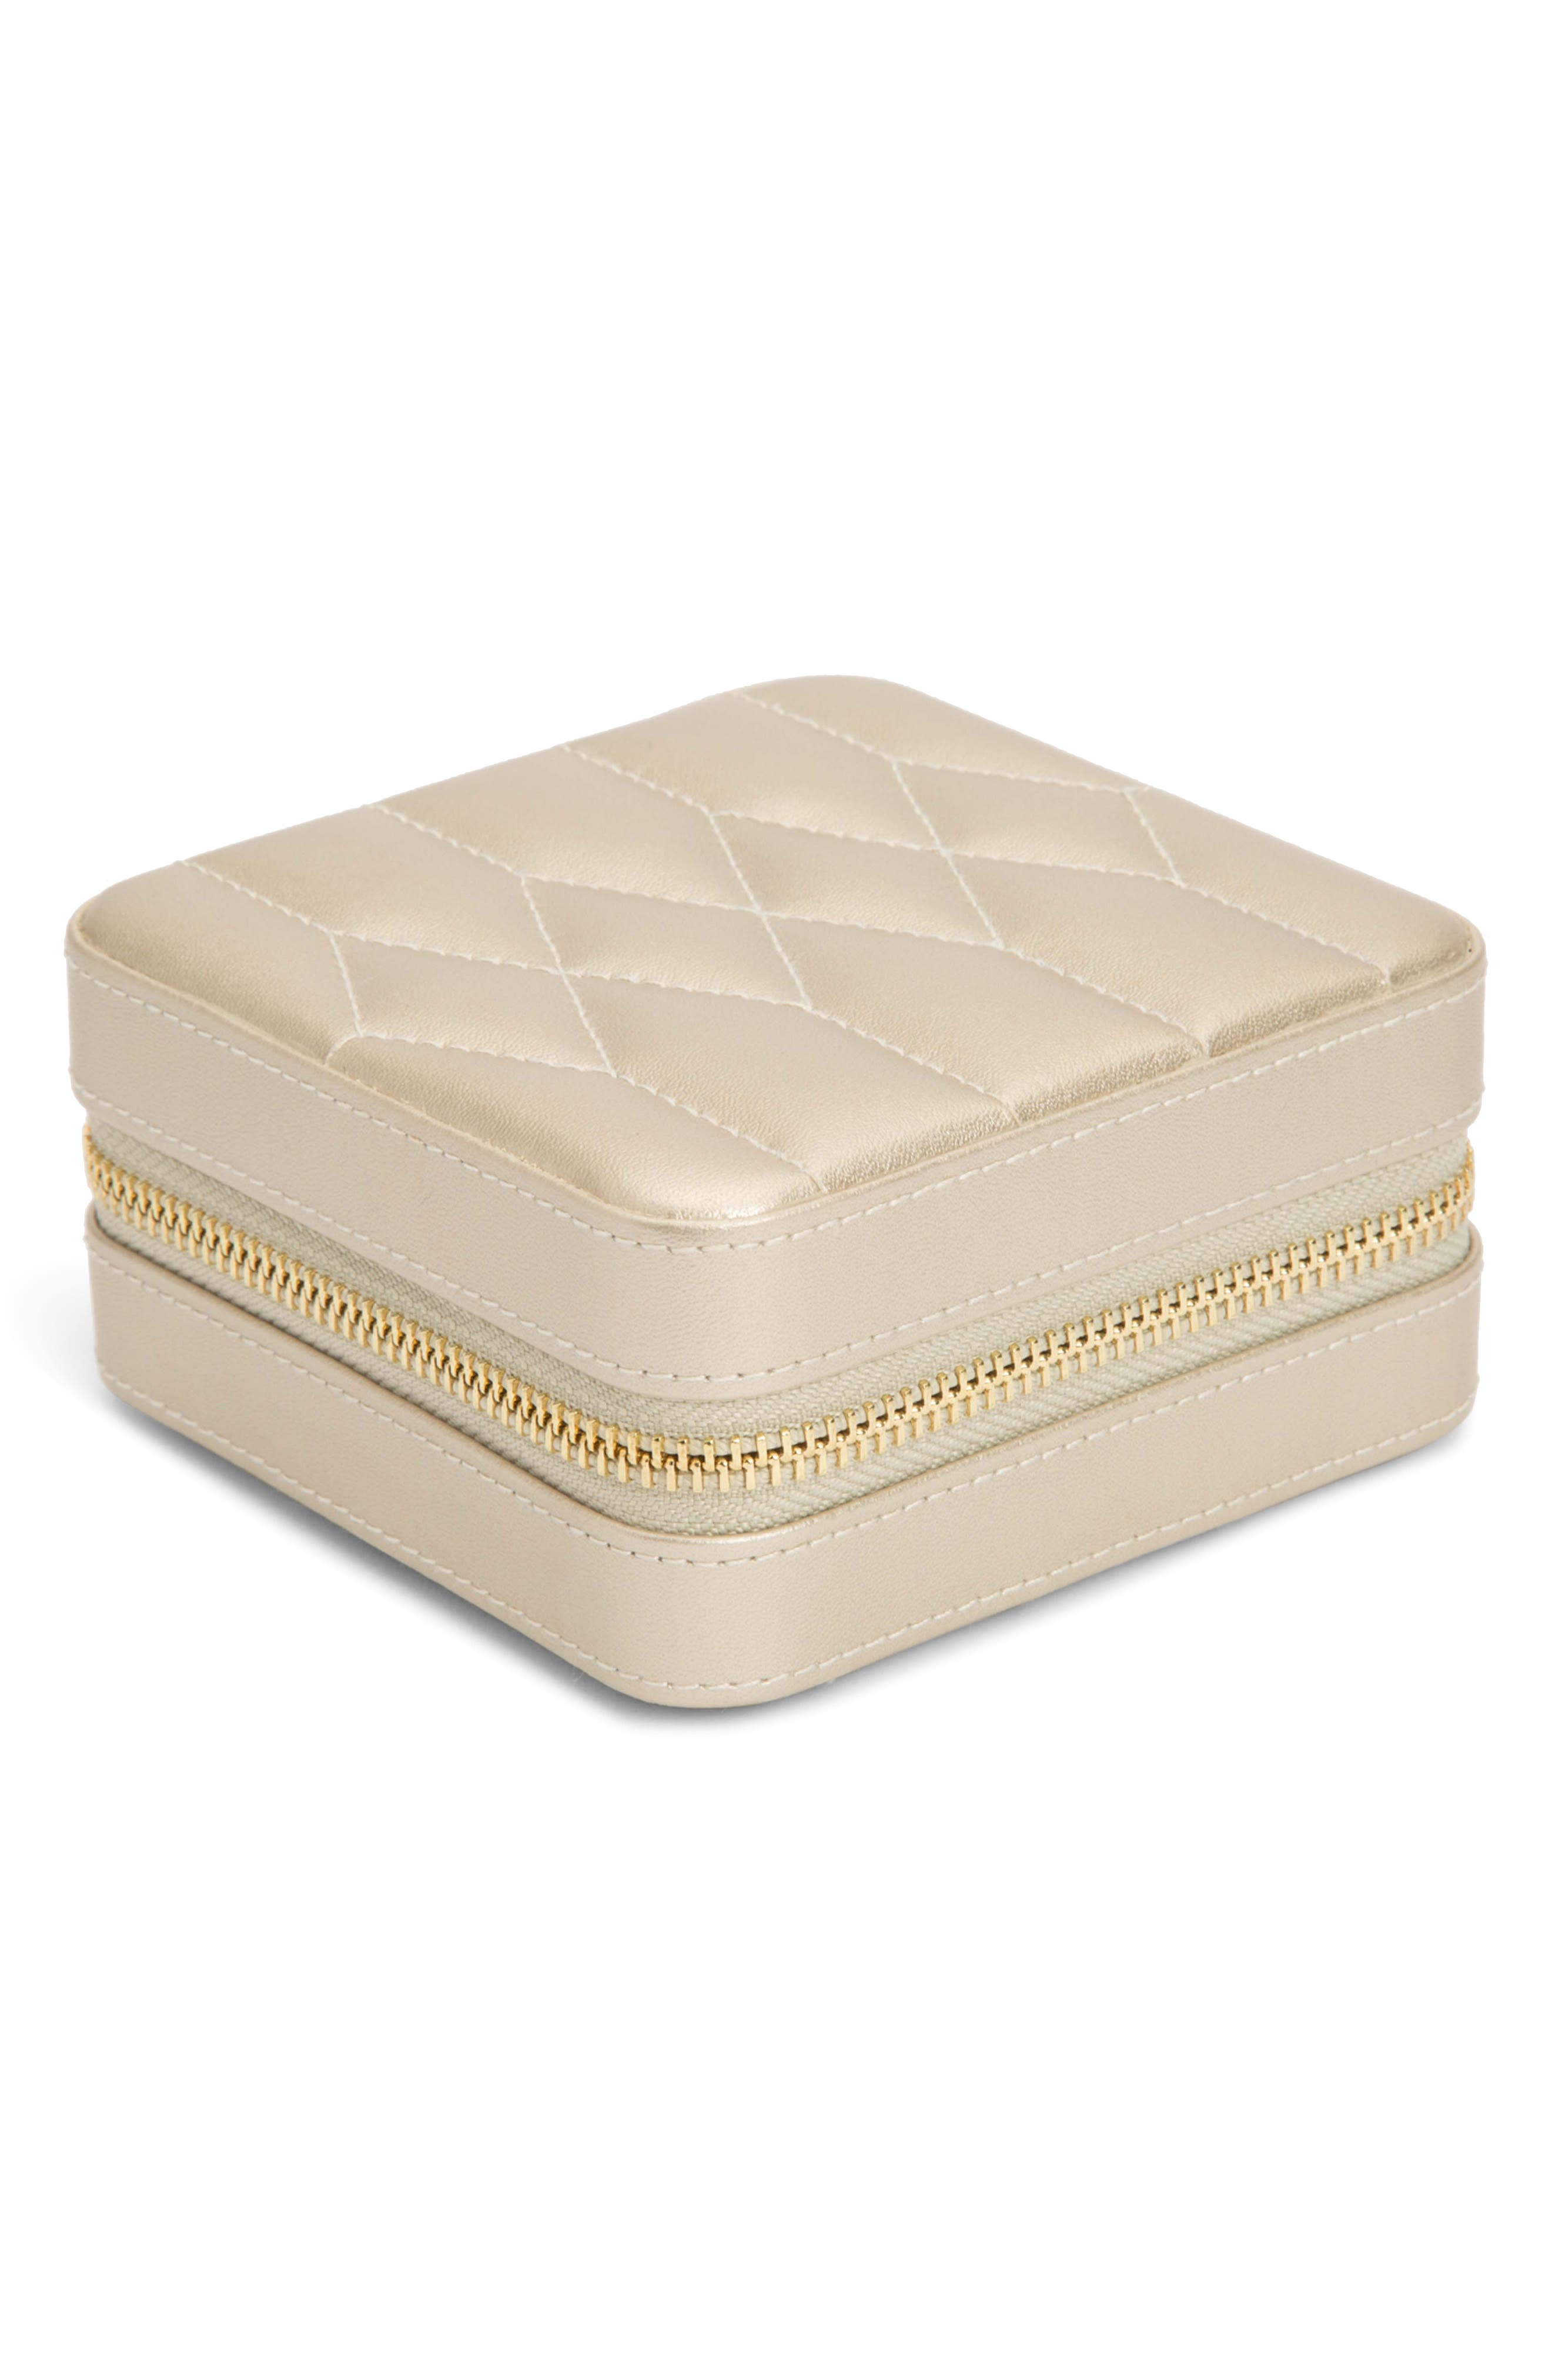 WOLF, 'Caroline' Travel Jewelry Case, Main thumbnail 1, color, CHAMPAGNE